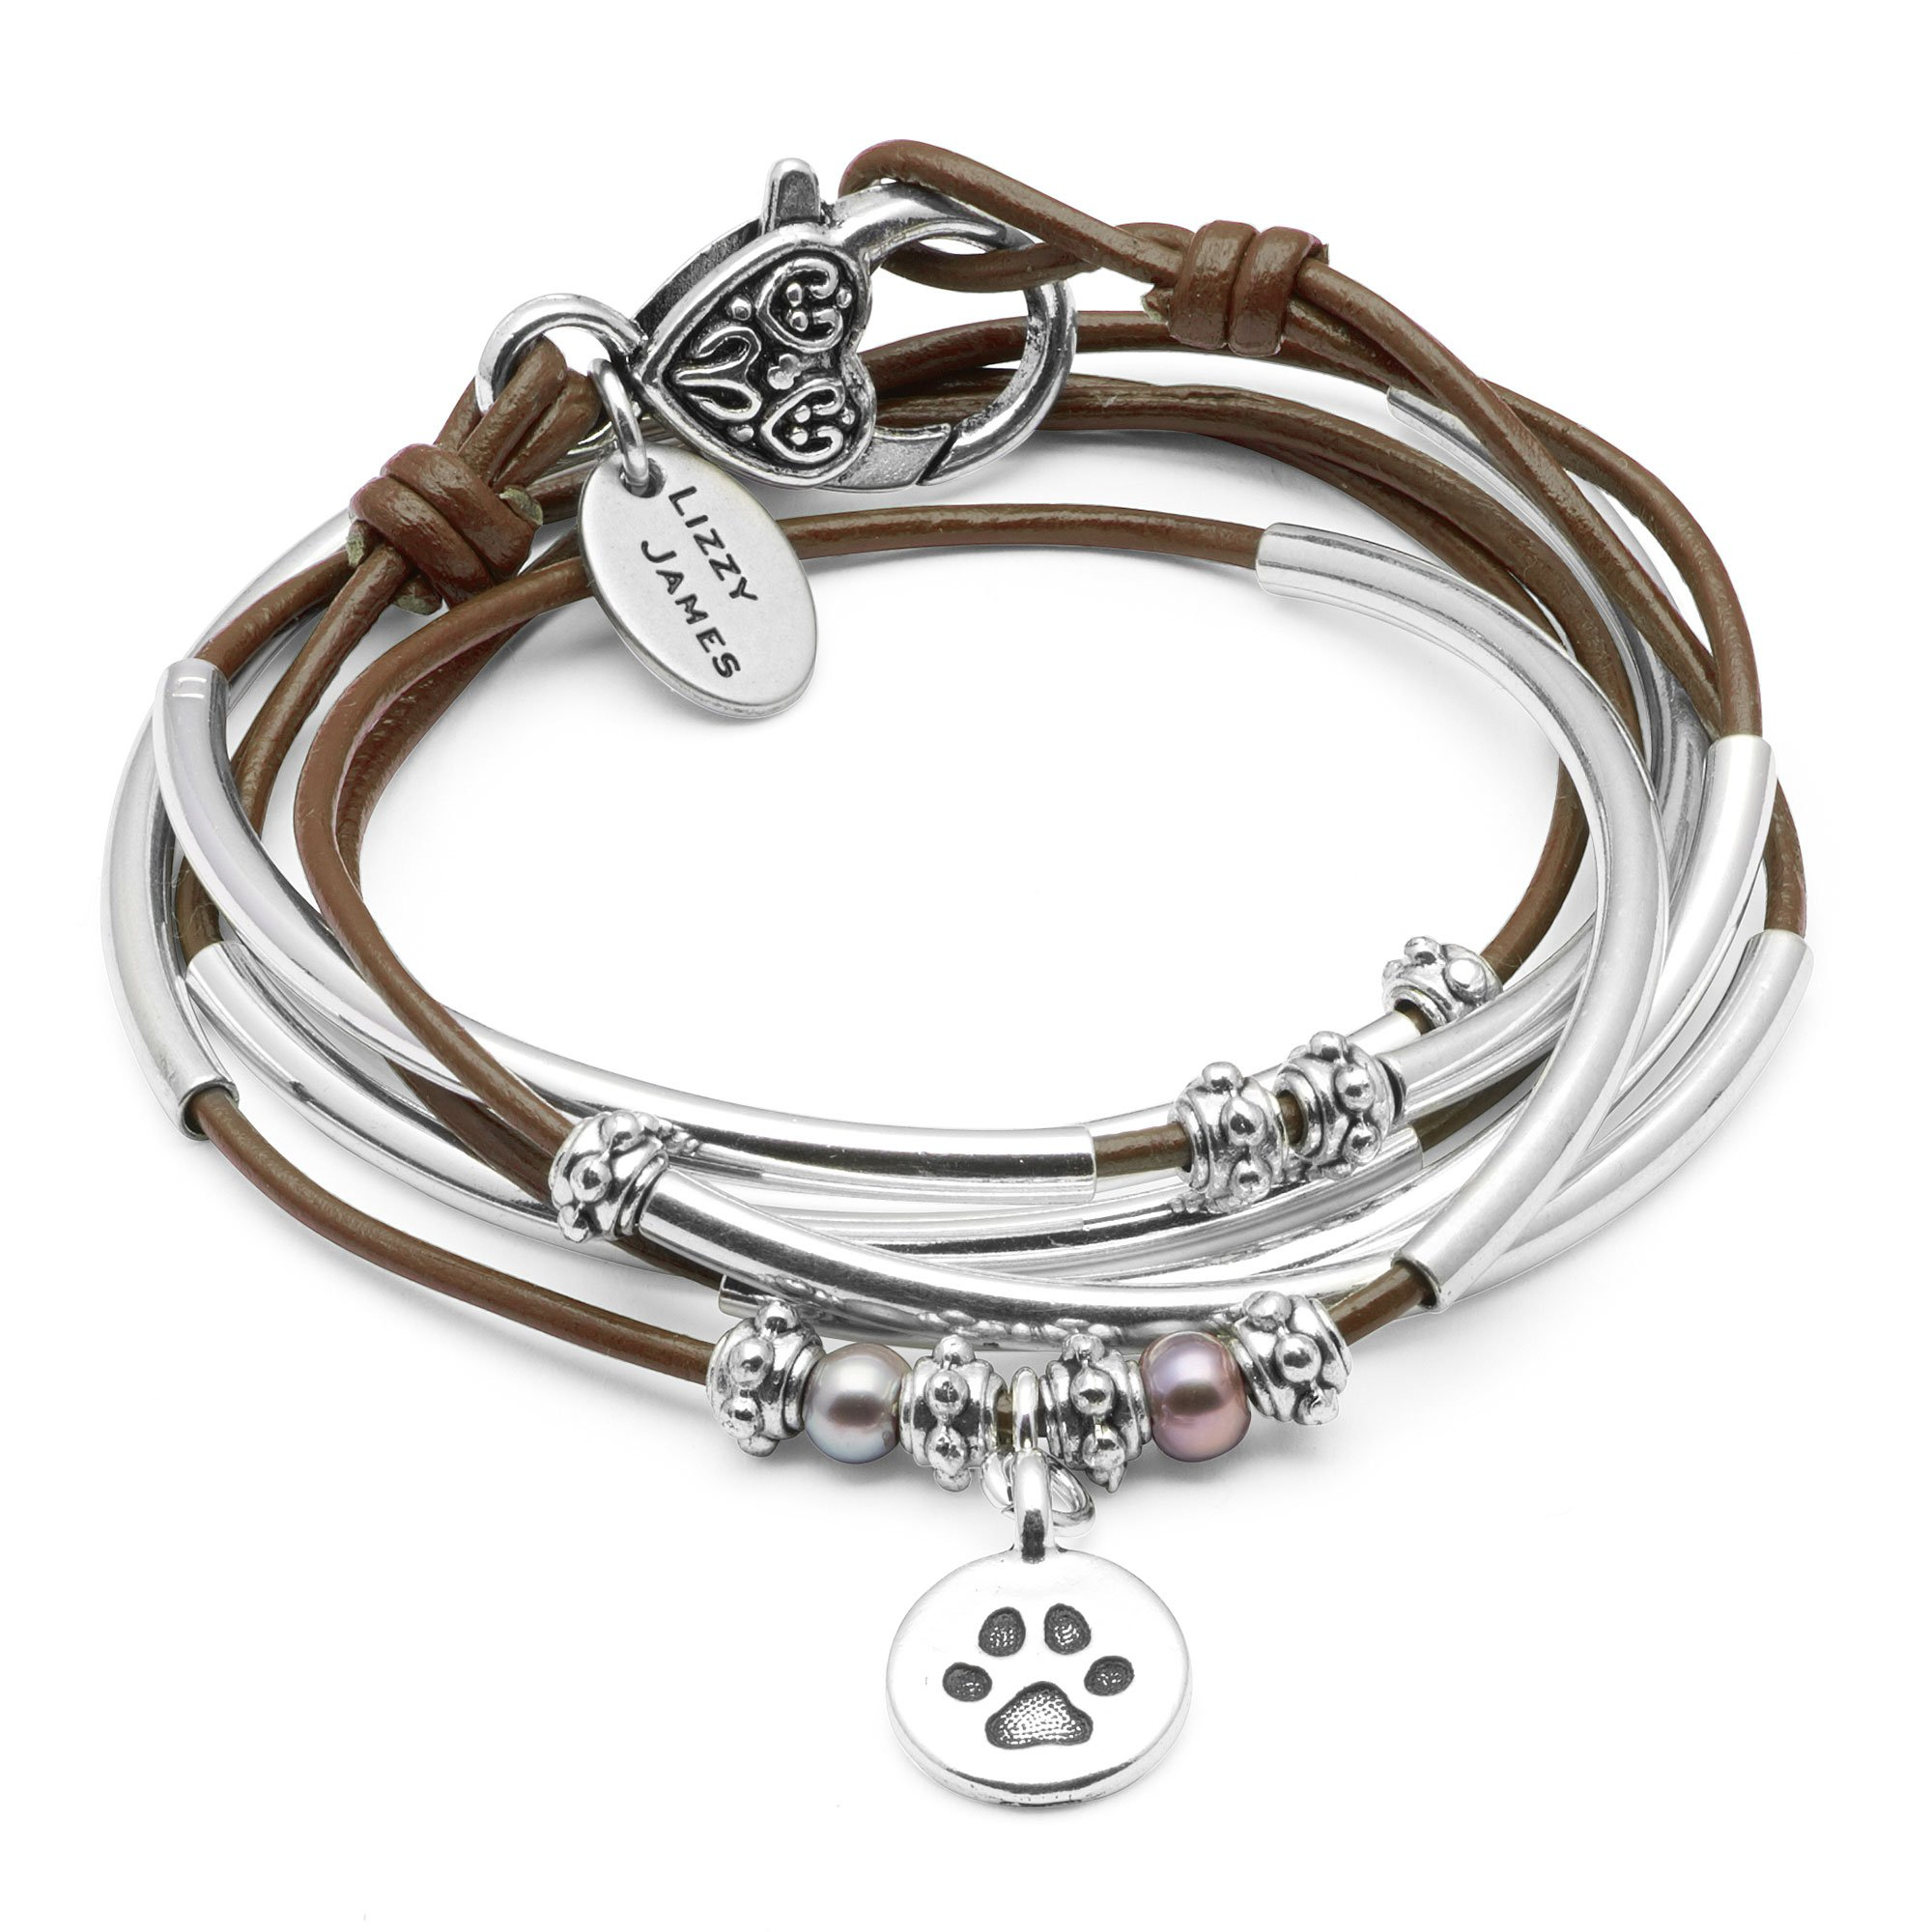 Lizzy James Charmer Gloss Chocolate Brown Leather Wrap Bracelet Necklace in Silver with Freshwater Pearls and Round Paw Charm (SMALL)